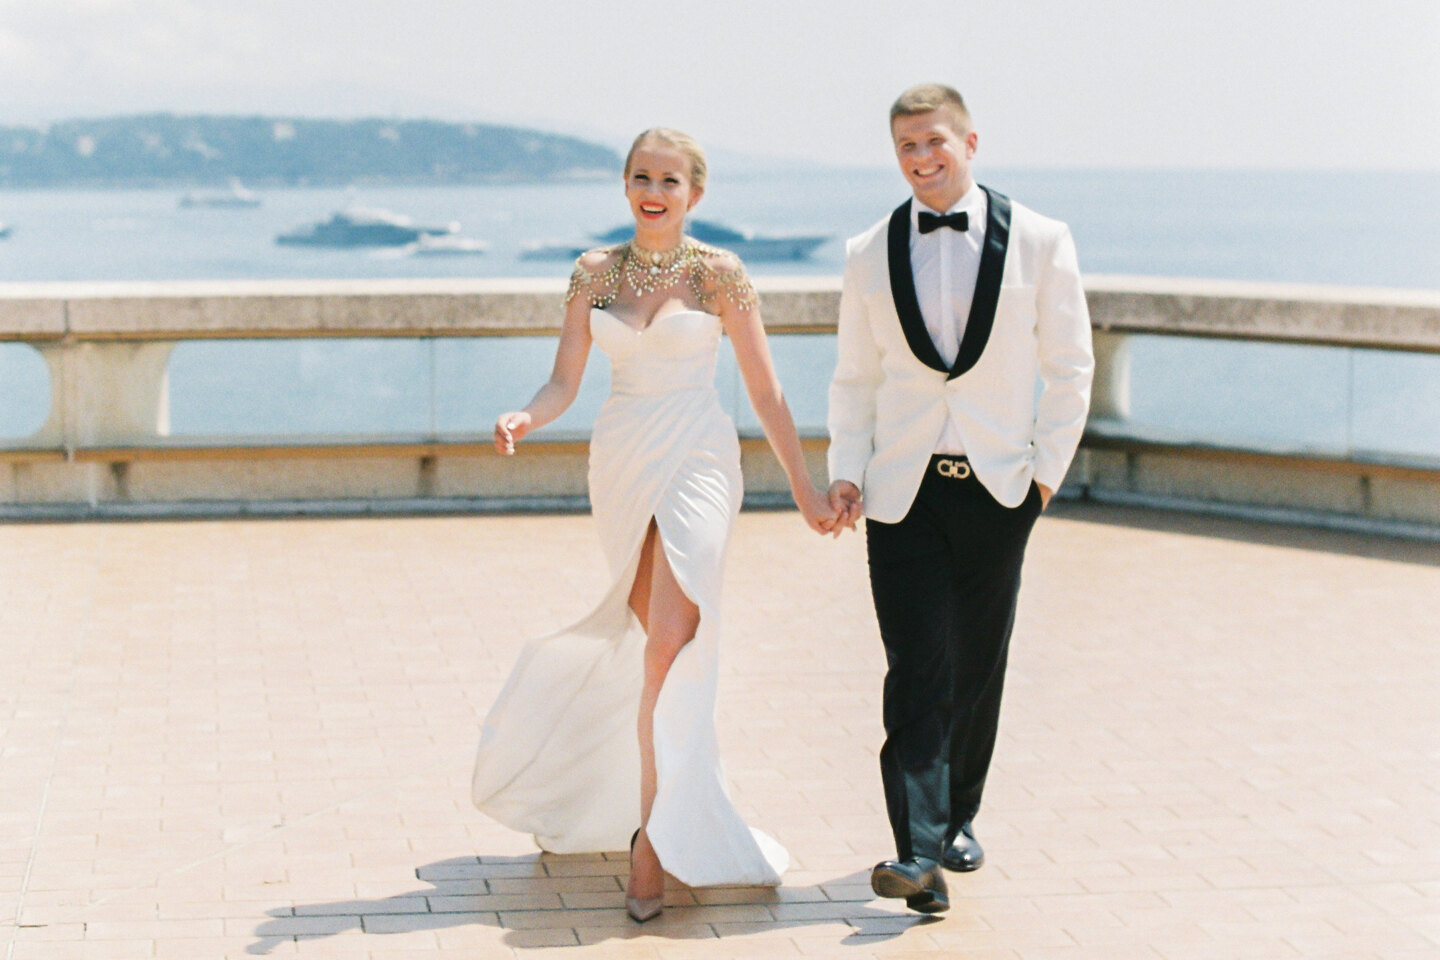 Couple photoshoot in Italy: A happy couple of newlyweds, boldly steps forward holding hands